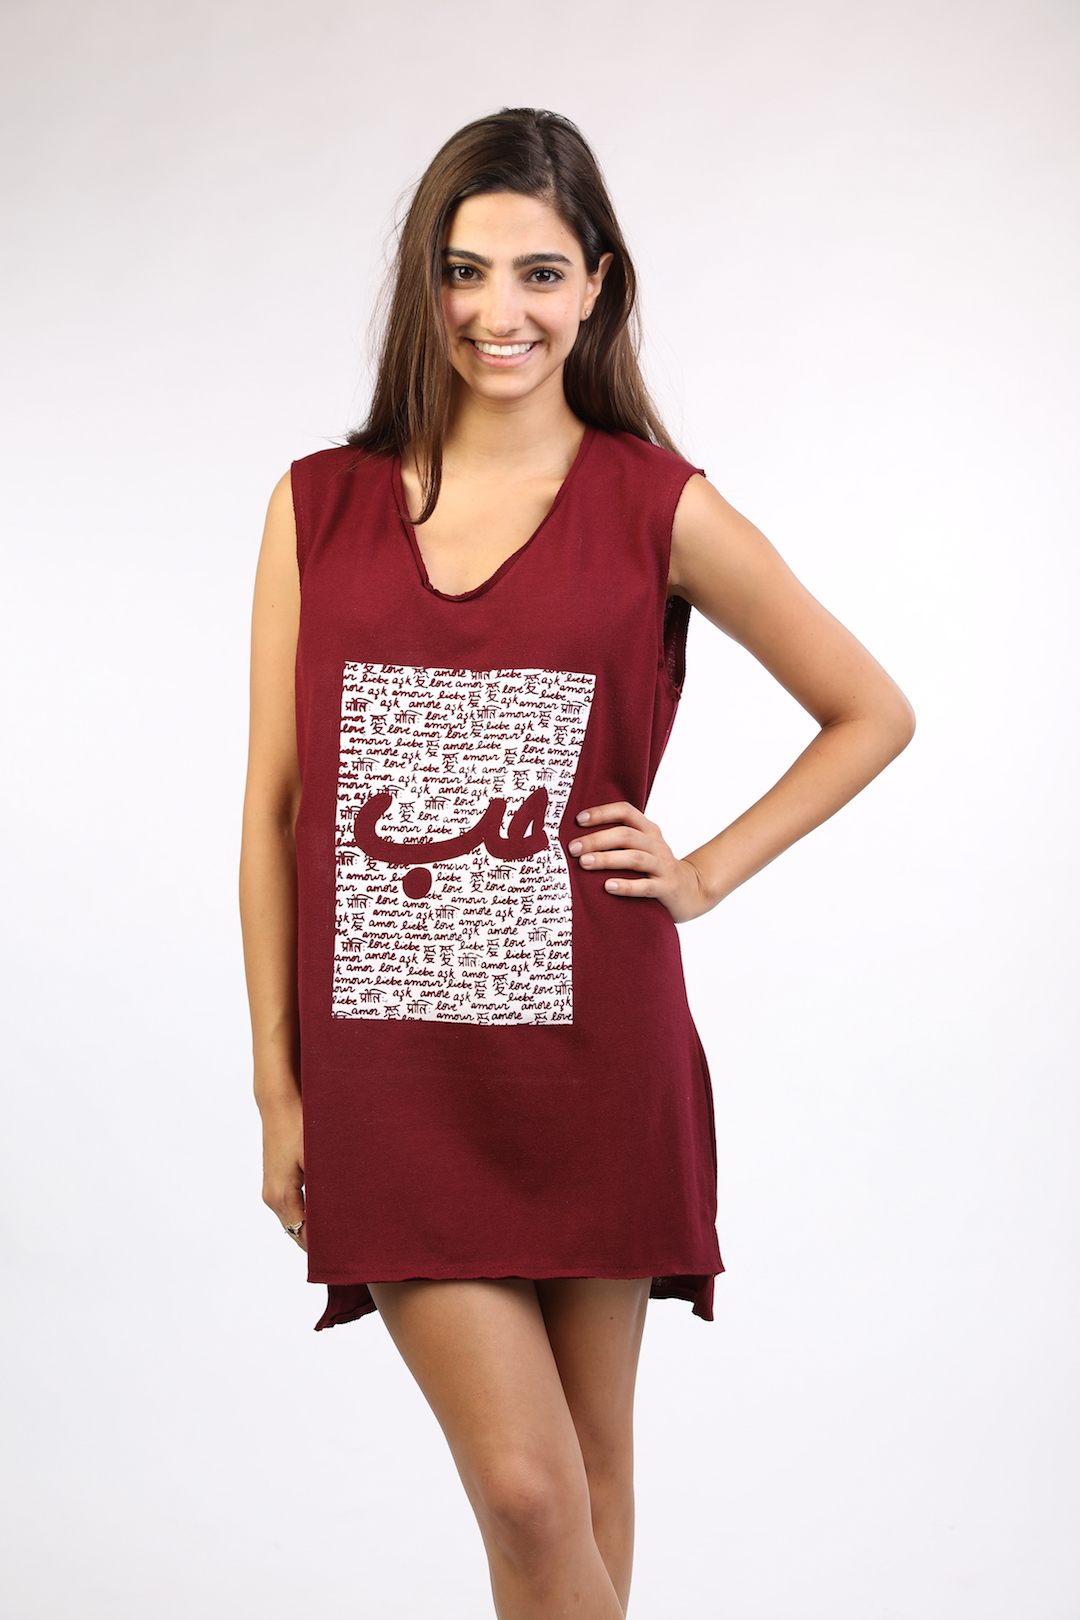 8ed86f69254 Burgundy Sleeveless Dress With White Patch Hob - Lebelik